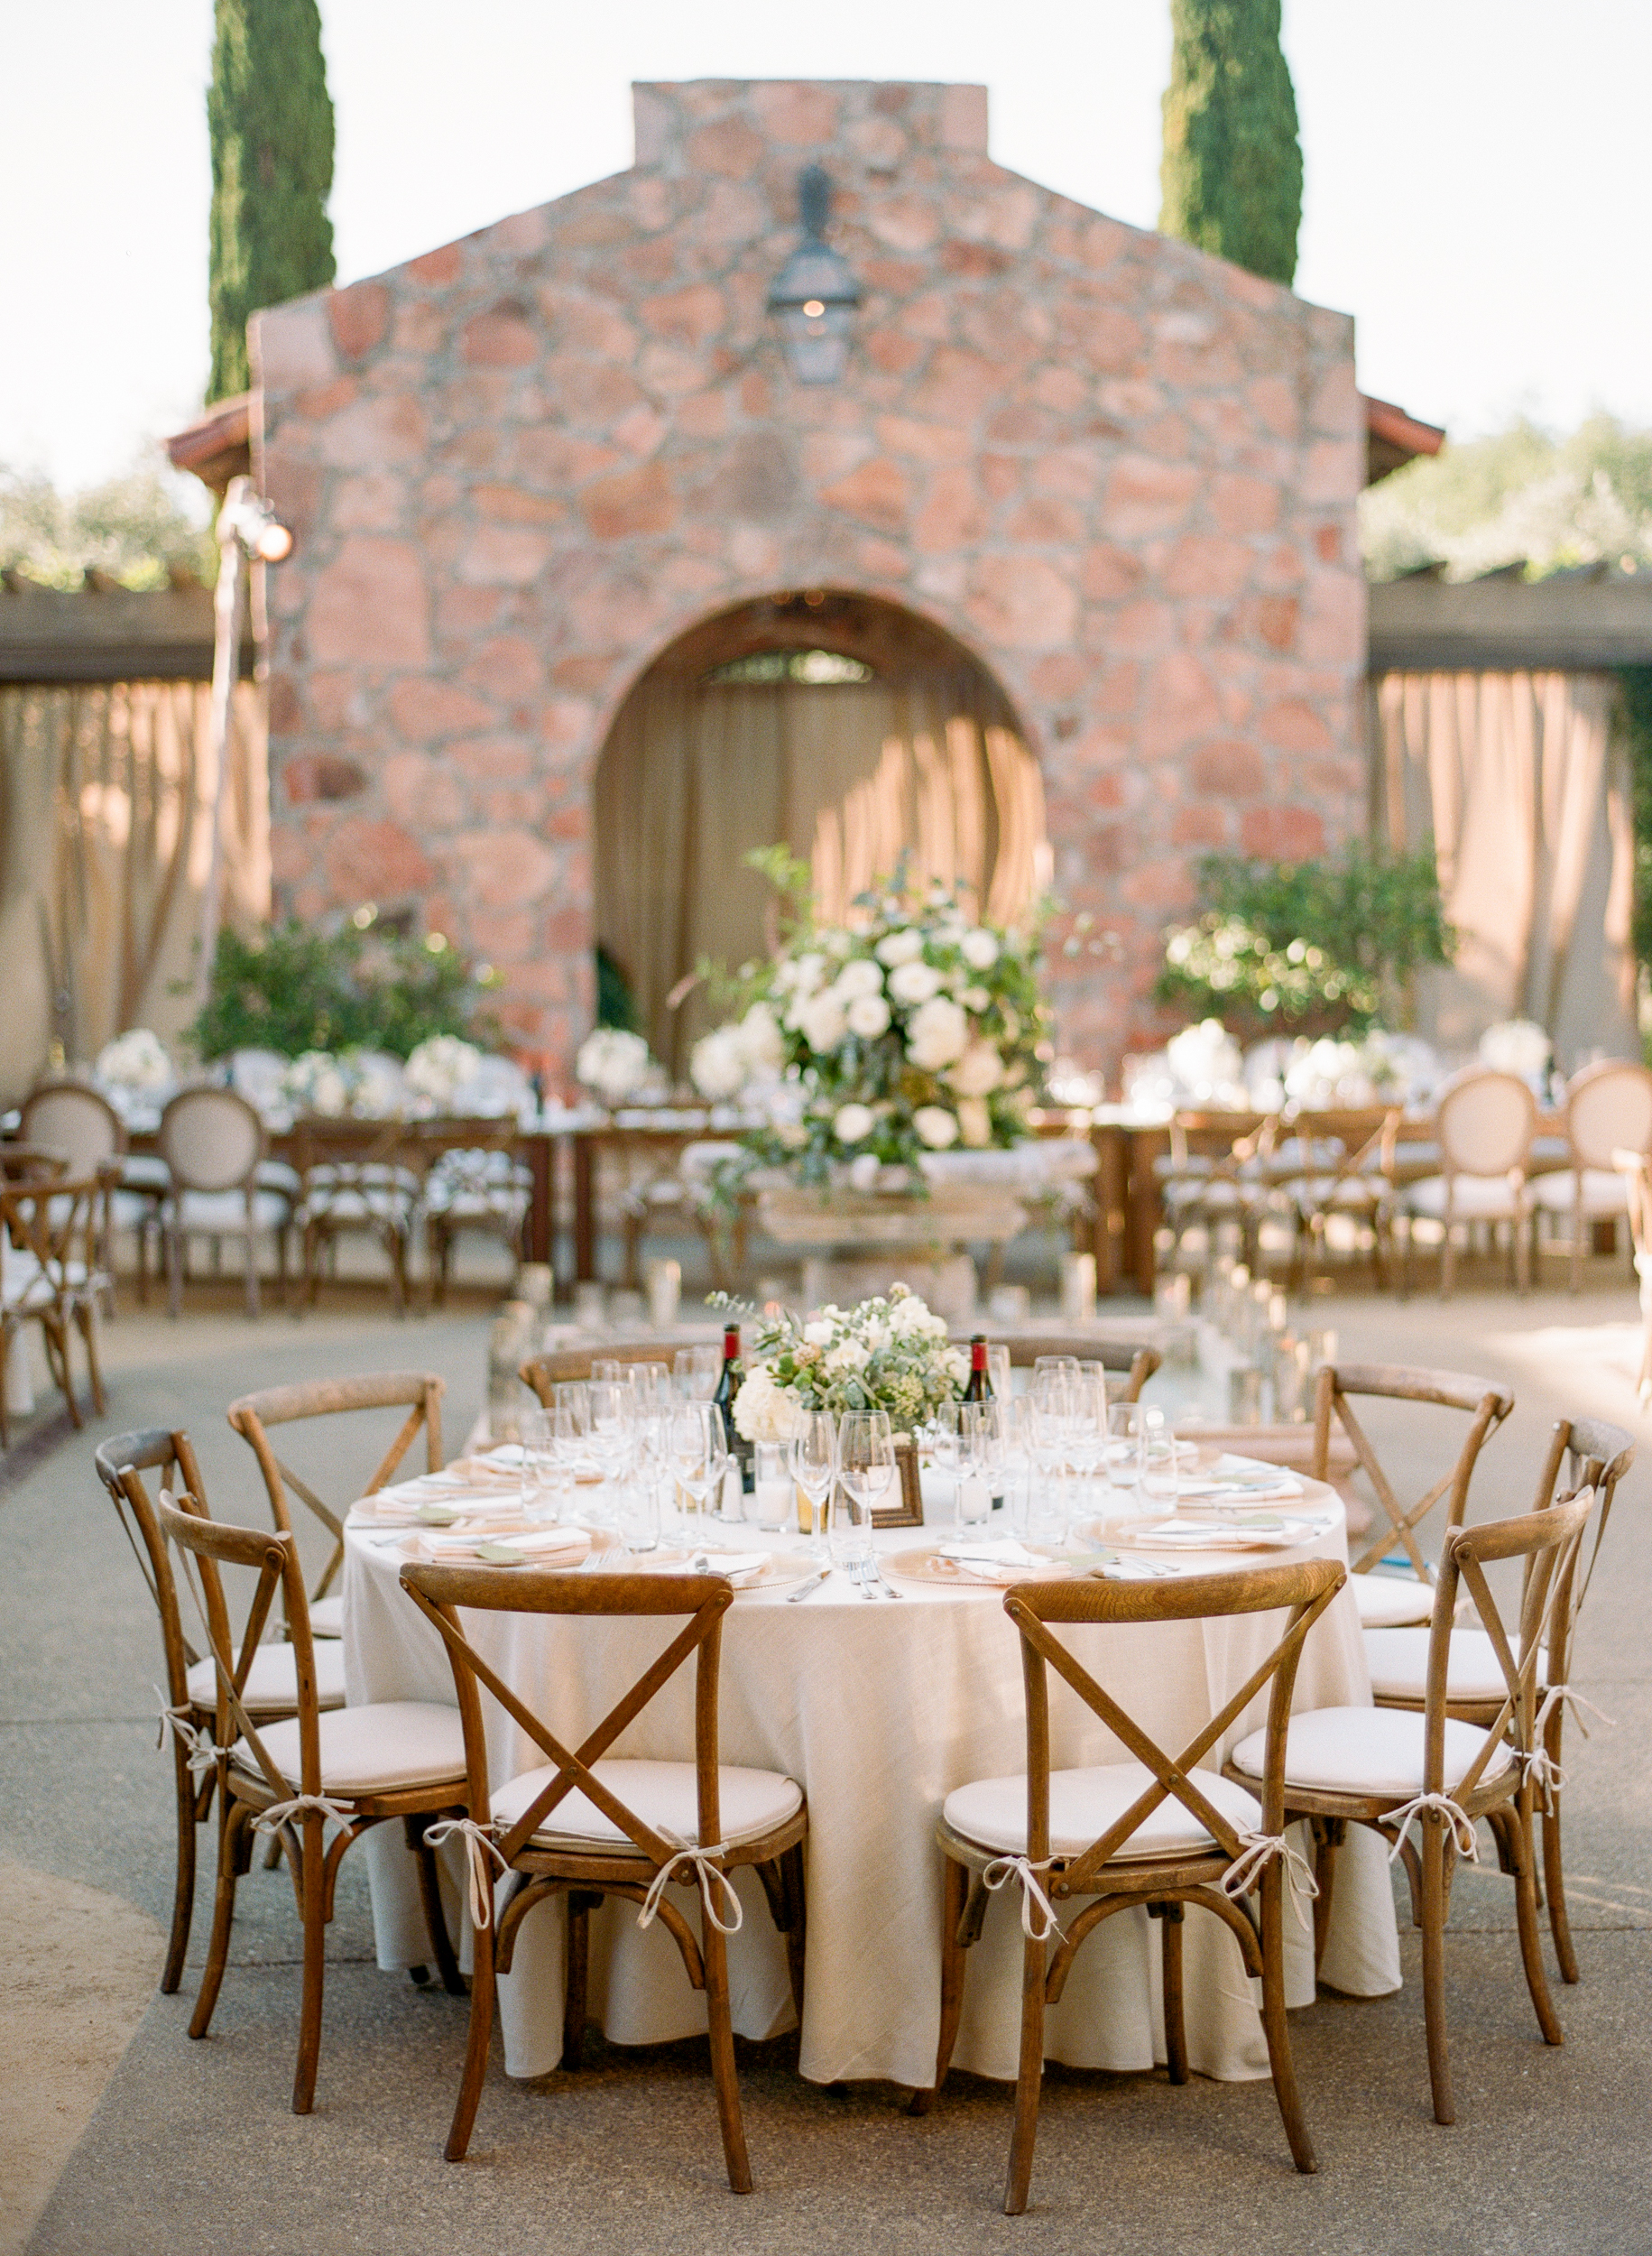 A gorgeous round table elegantly set in a courtyard emanating an Italian dream; photo by Sylvie Gil